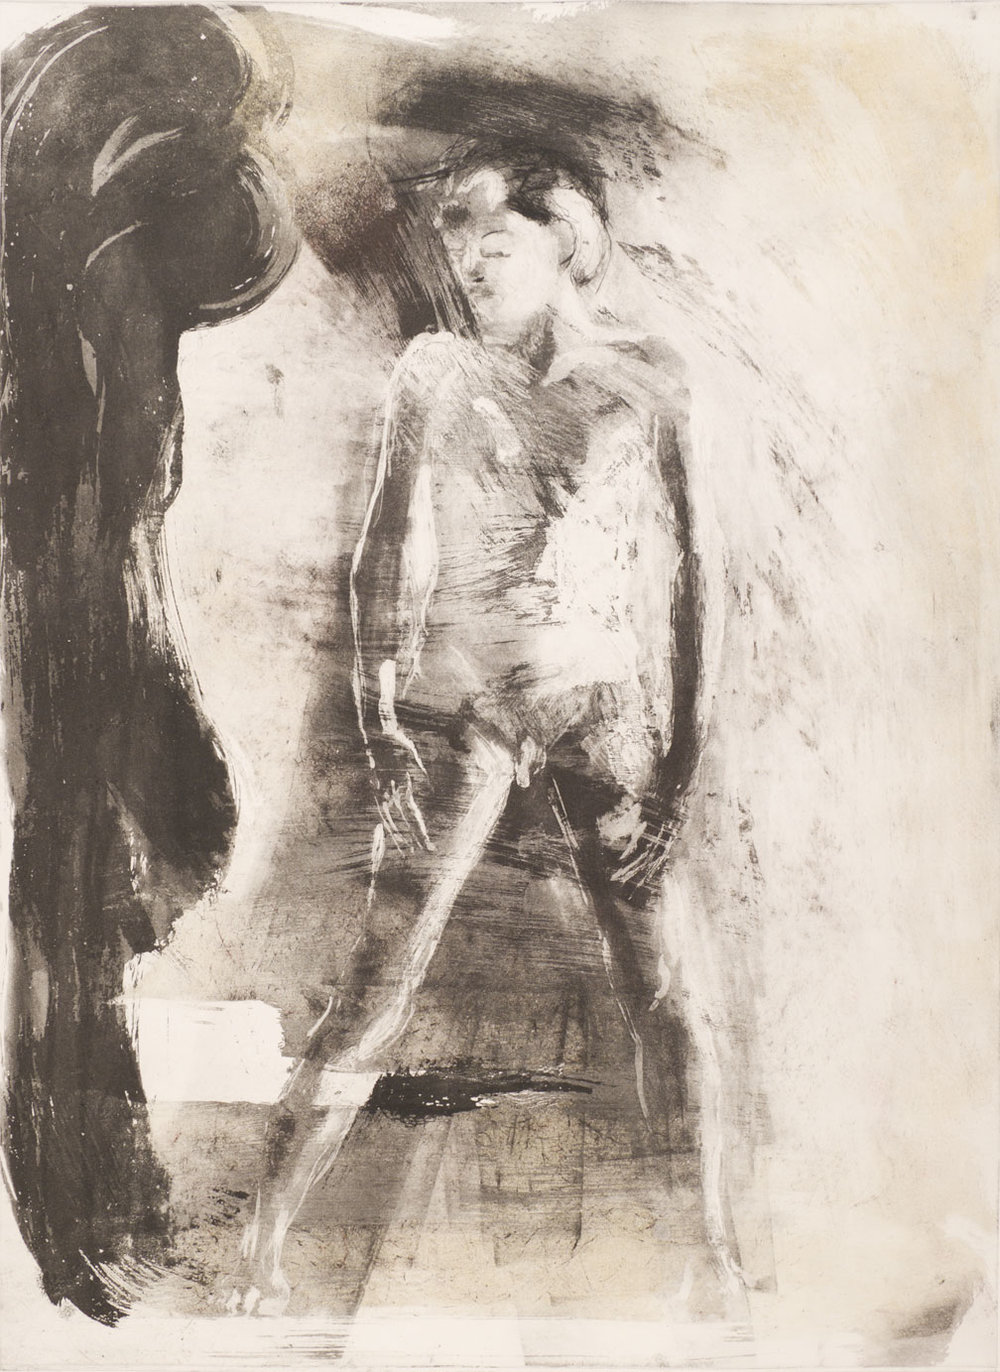 Floating Islands George Platt Lynes Figure, 1985. Etching on paper, study proof D, 30 x 21 inches